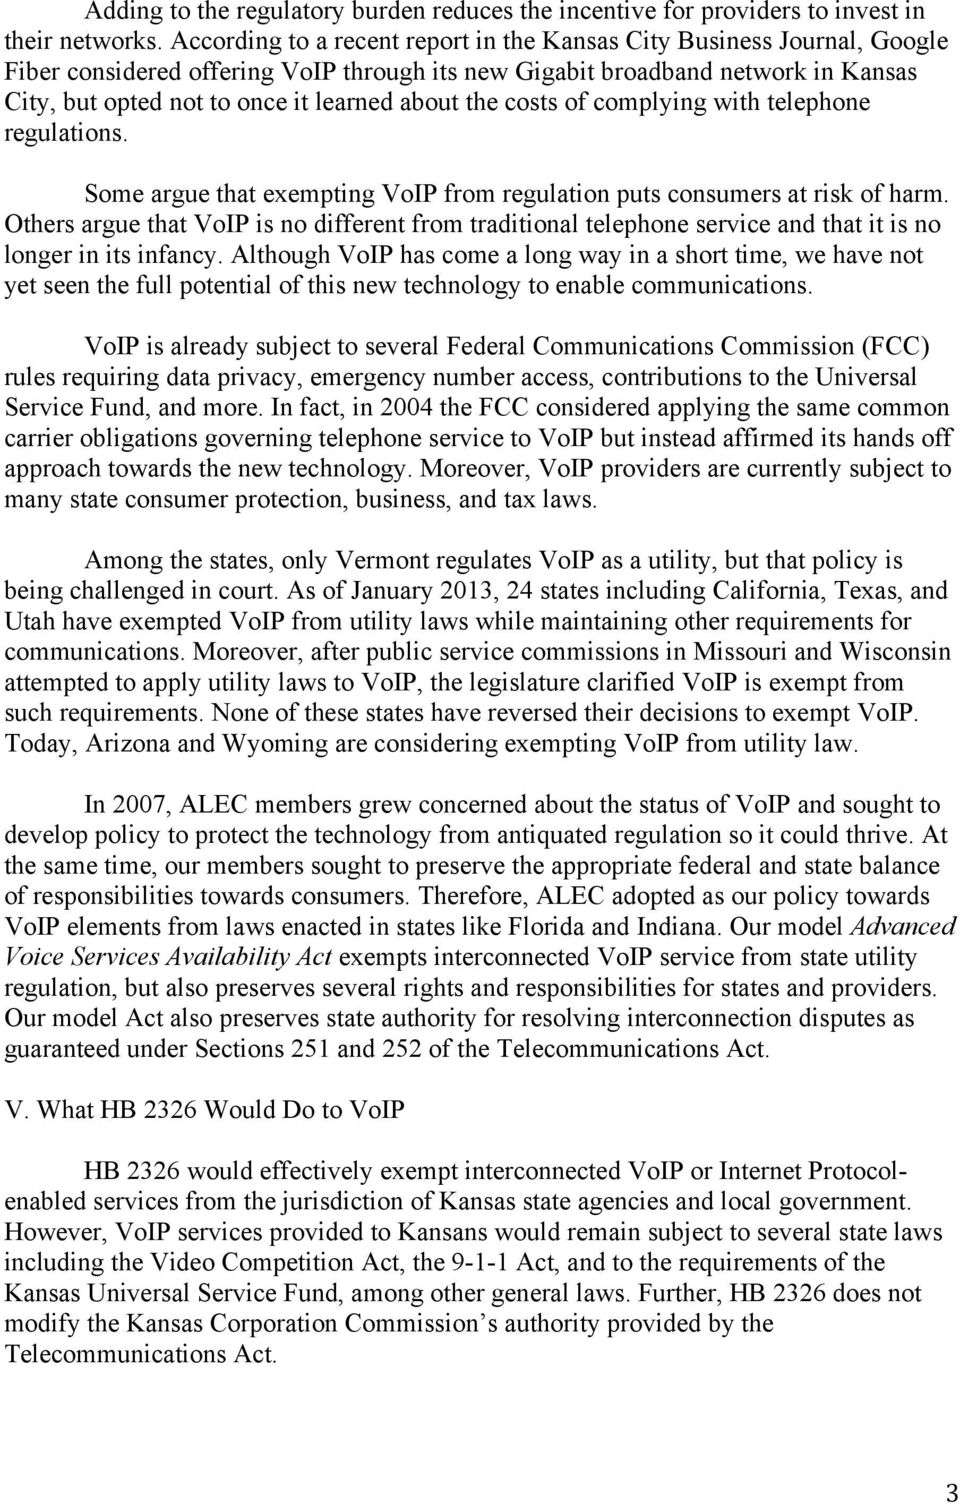 about the costs of complying with telephone regulations. Some argue that exempting VoIP from regulation puts consumers at risk of harm.